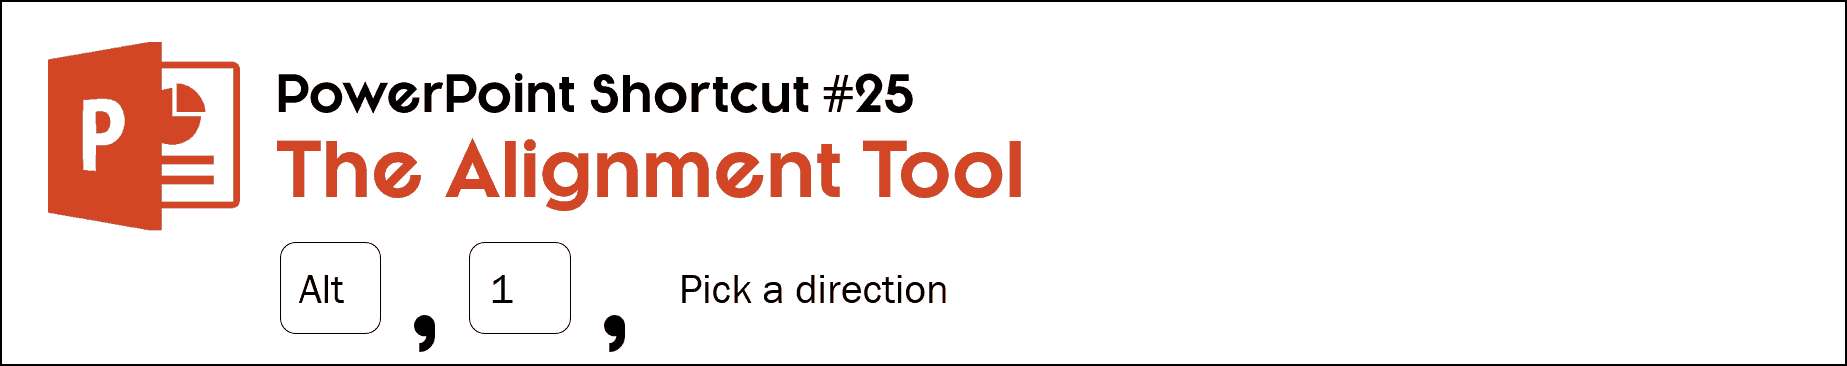 After setting up the alignment tool on your QAT, hit Alt then 1 to open the tool and then follow the letter to the alignment direction